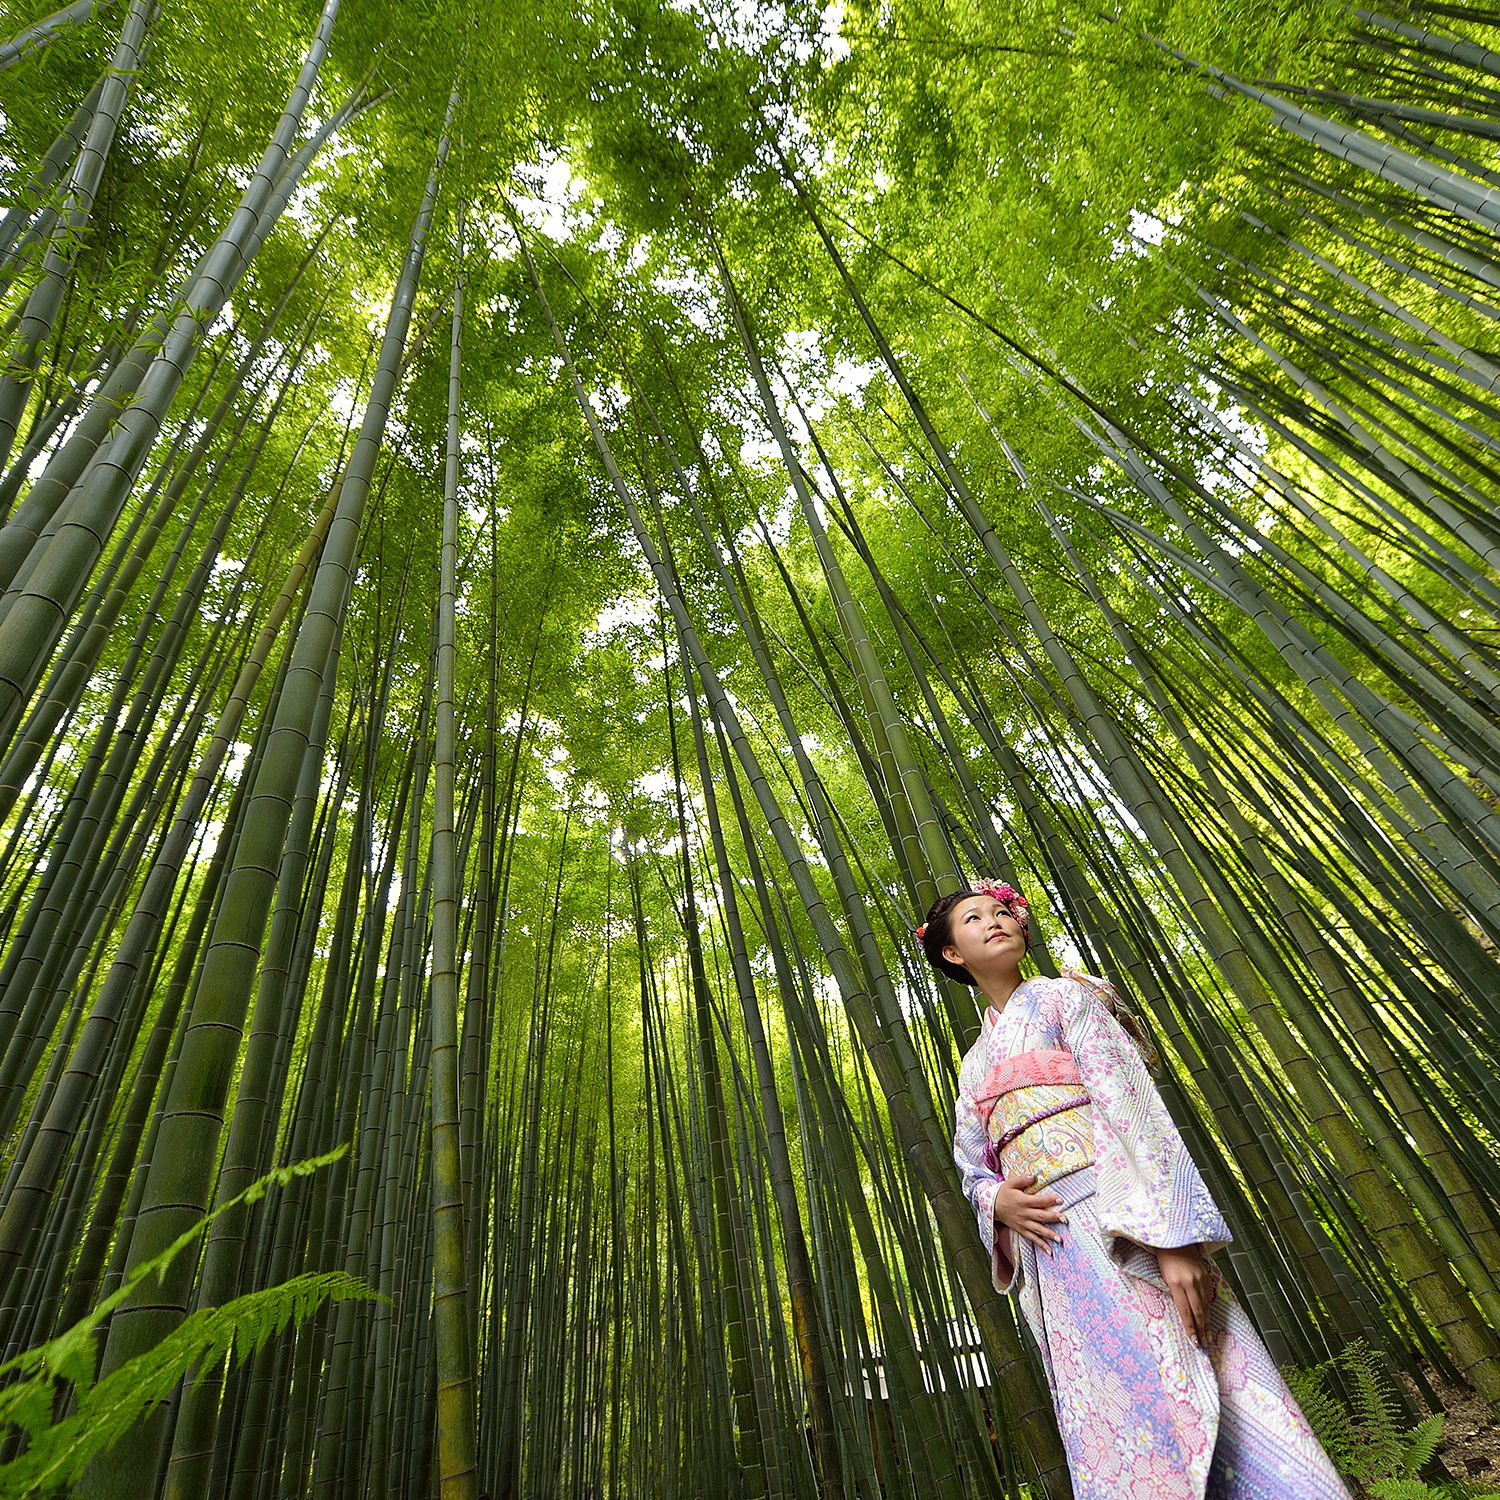 Coming of Age Photography by Ismail Niyaz Mohamed, bamboo forest, japan